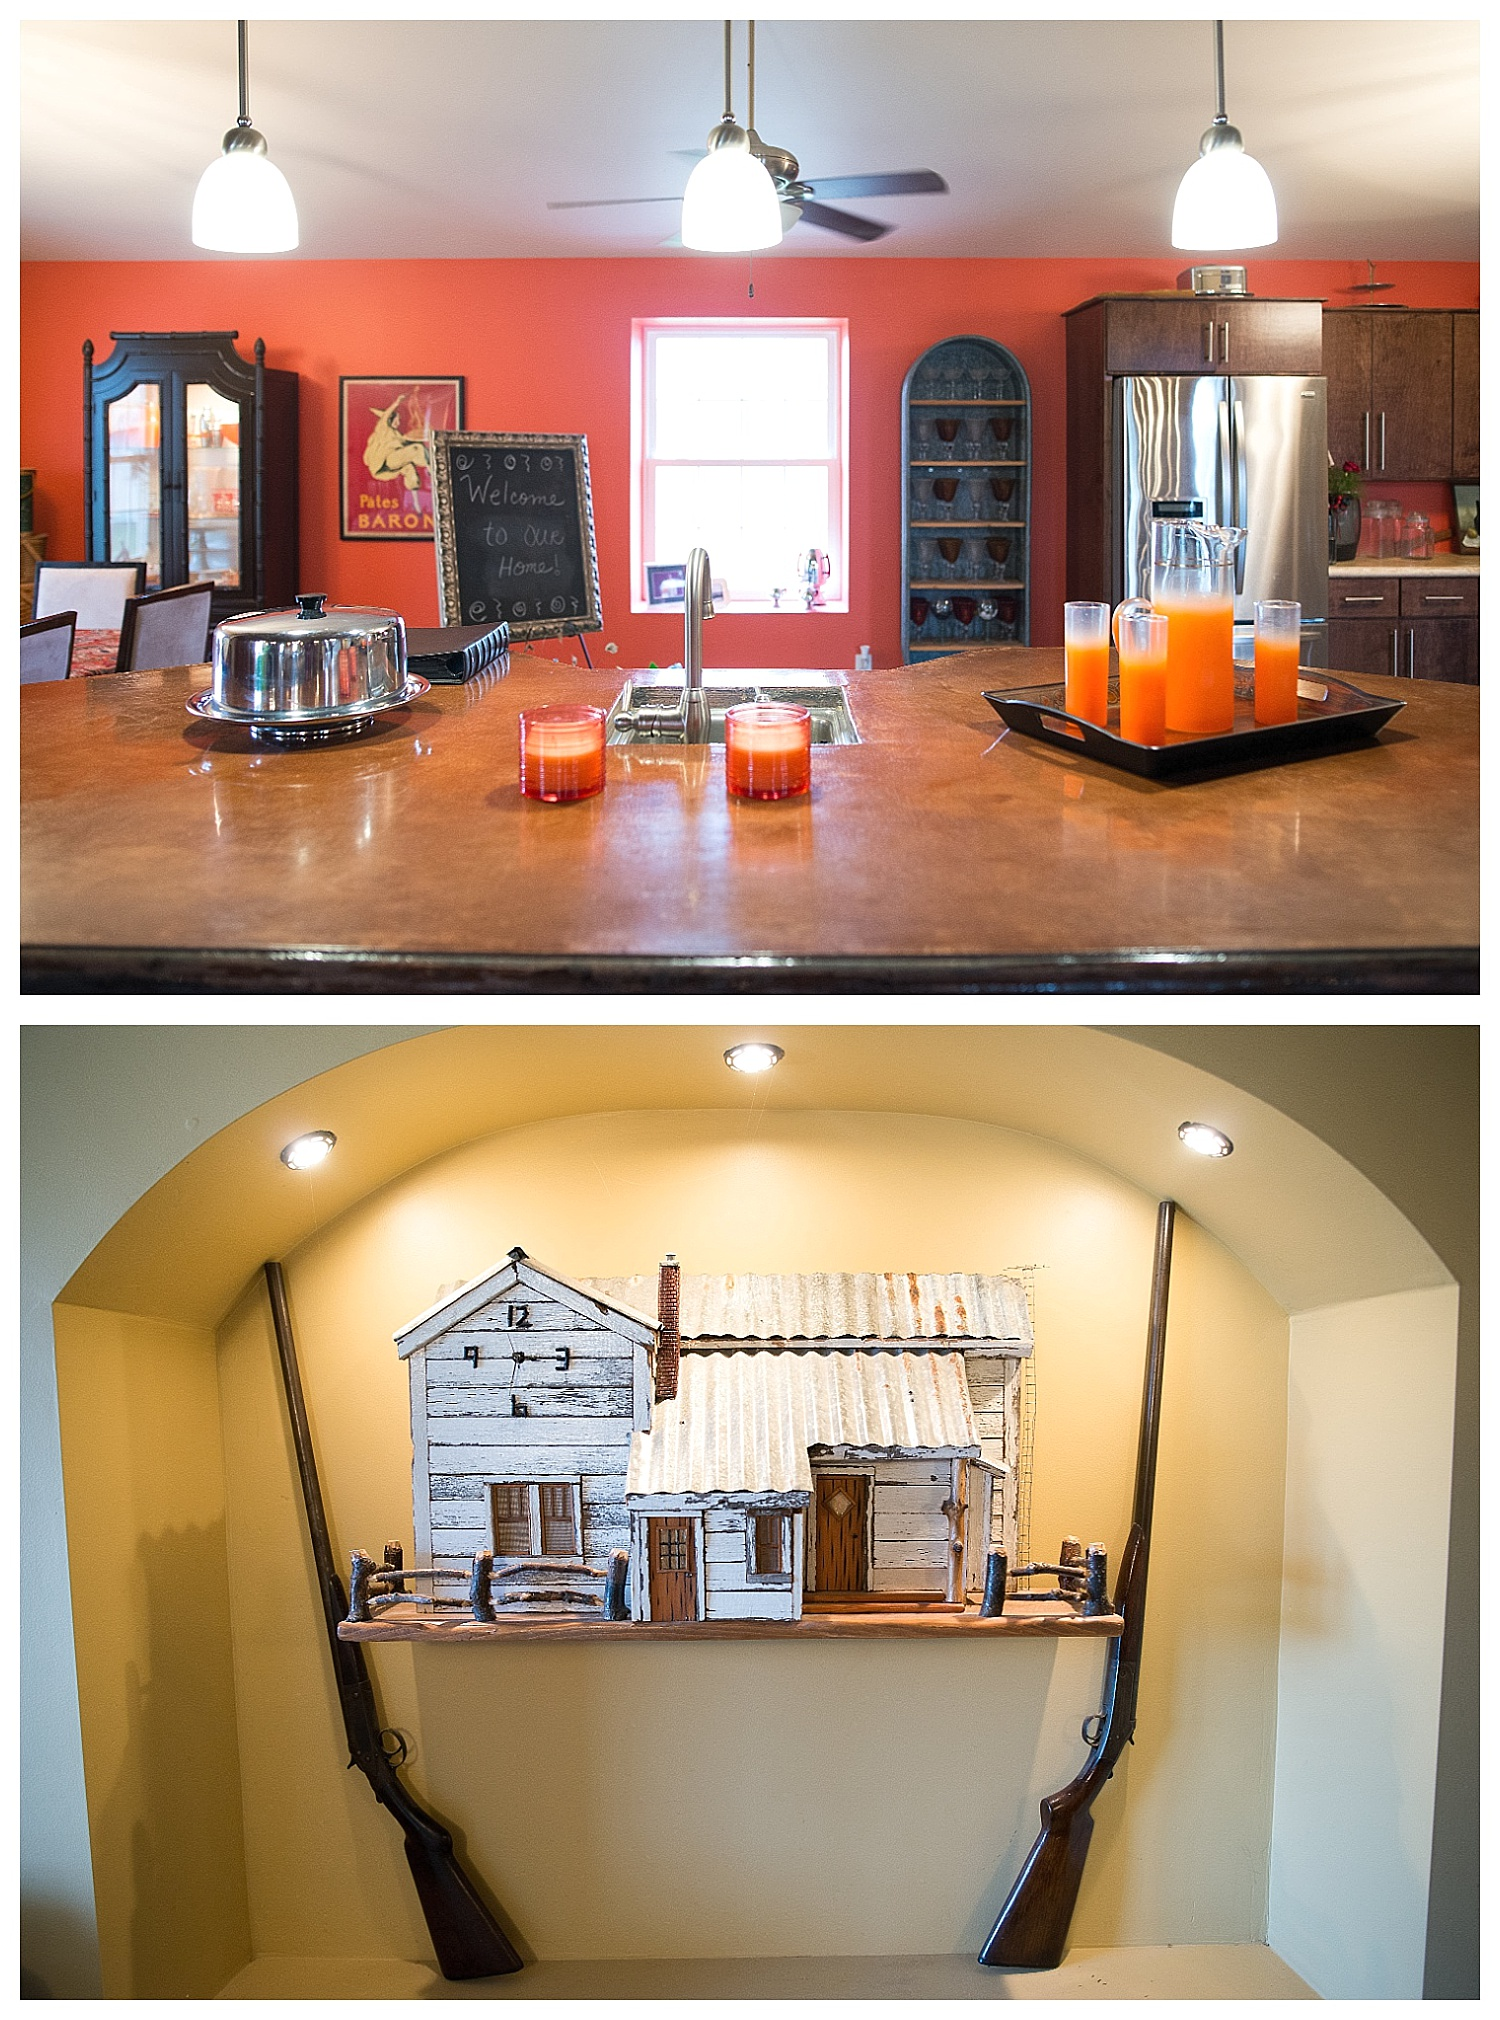 Maria: Bold orange, bling, frames and family photos.  Terry: Beautifully reimagined natural materials.  See the wine holder trough in the top photo?  Terry crafted it out of an old trough.